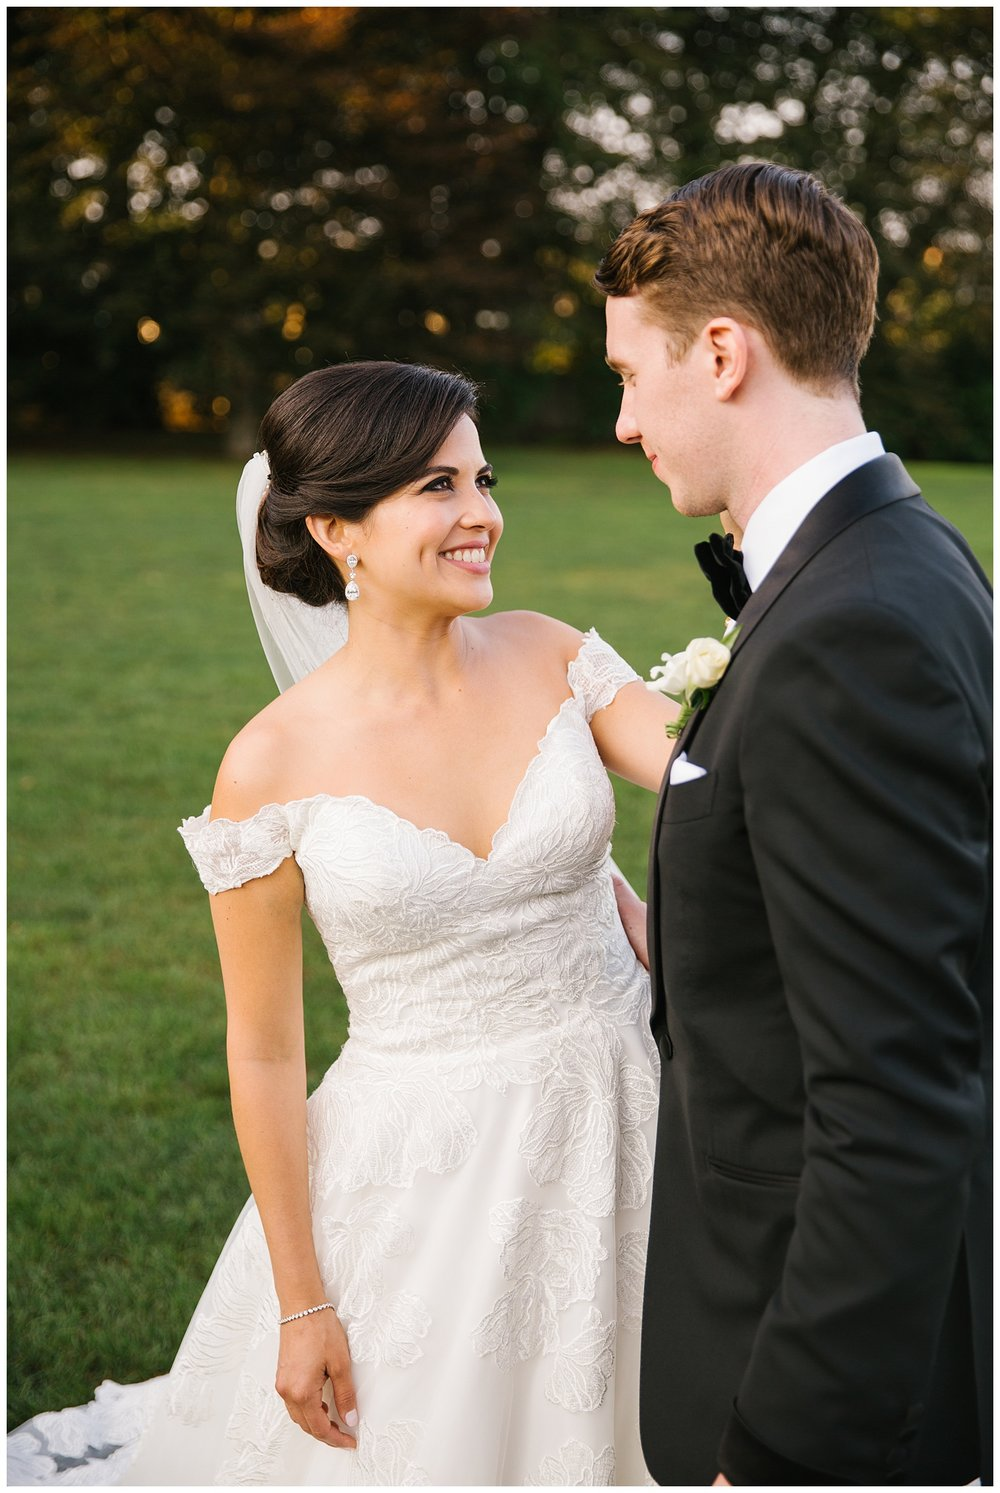 Stephen_Nathalie_Rosecliff_Mansion_Wedding_022.jpeg